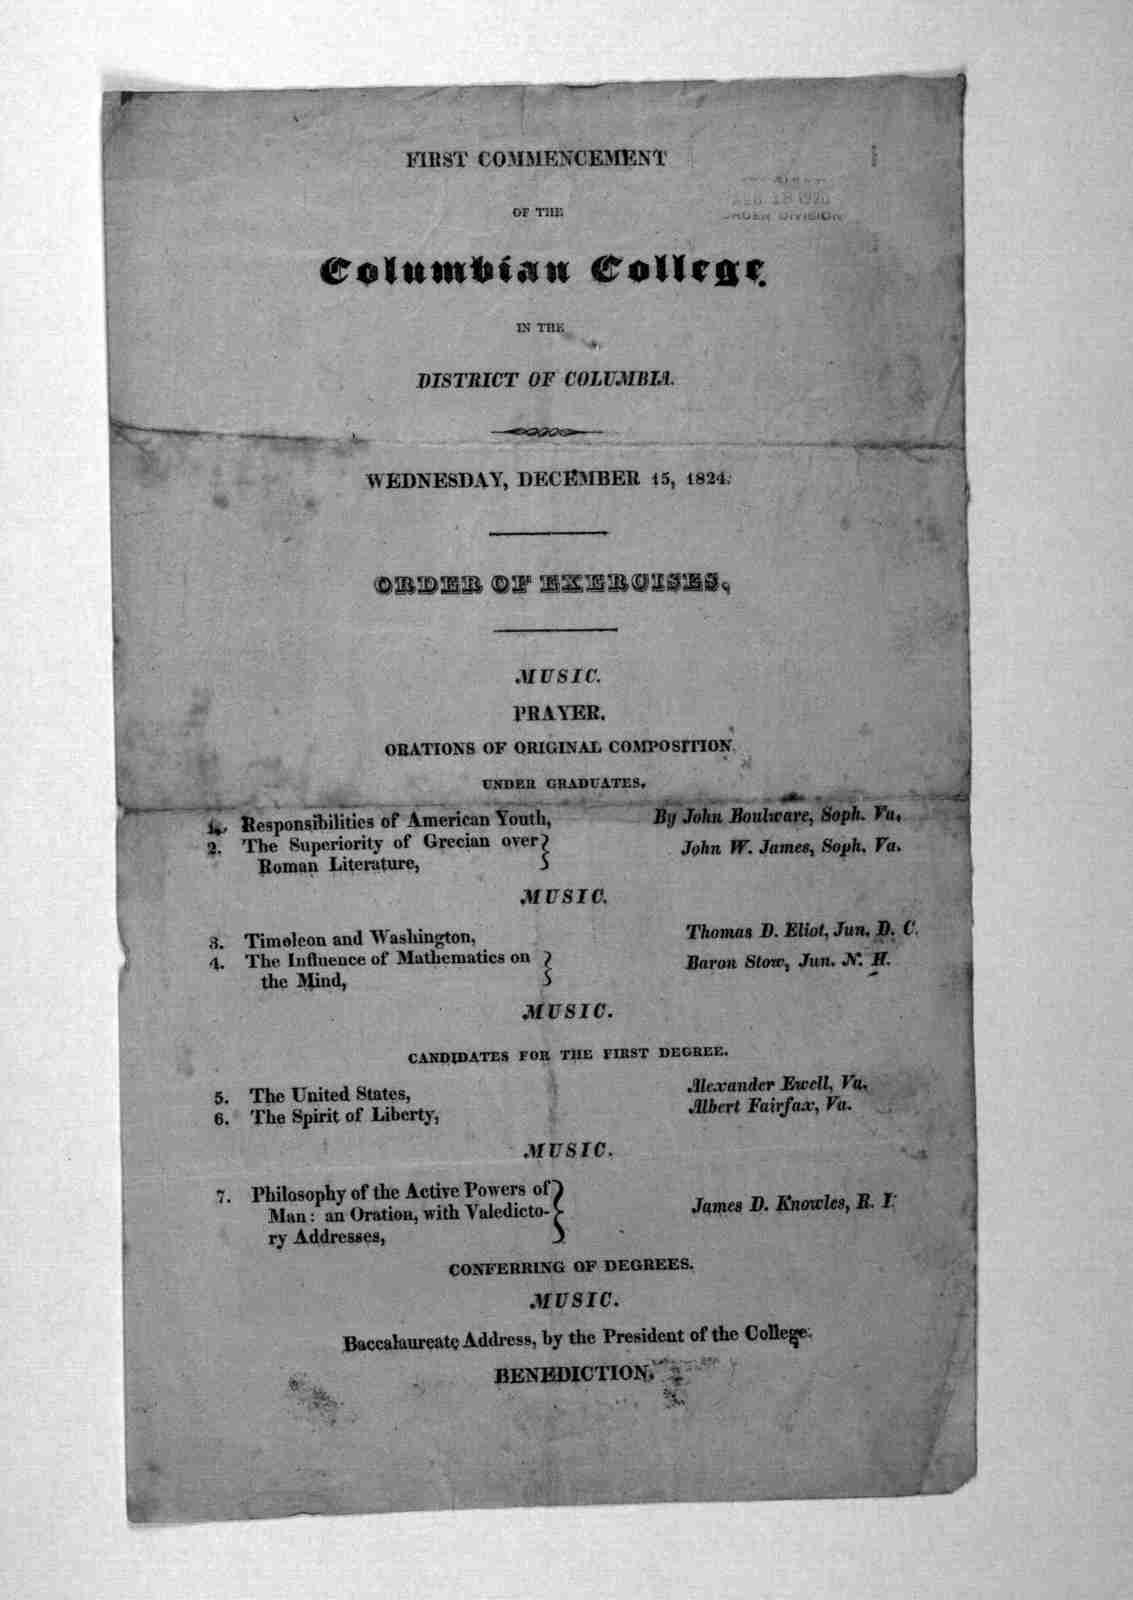 First commencement of the Columbian College, in the District of Columbia, Wednesday, December 15, 1824. [Washington, D. C. 1824].